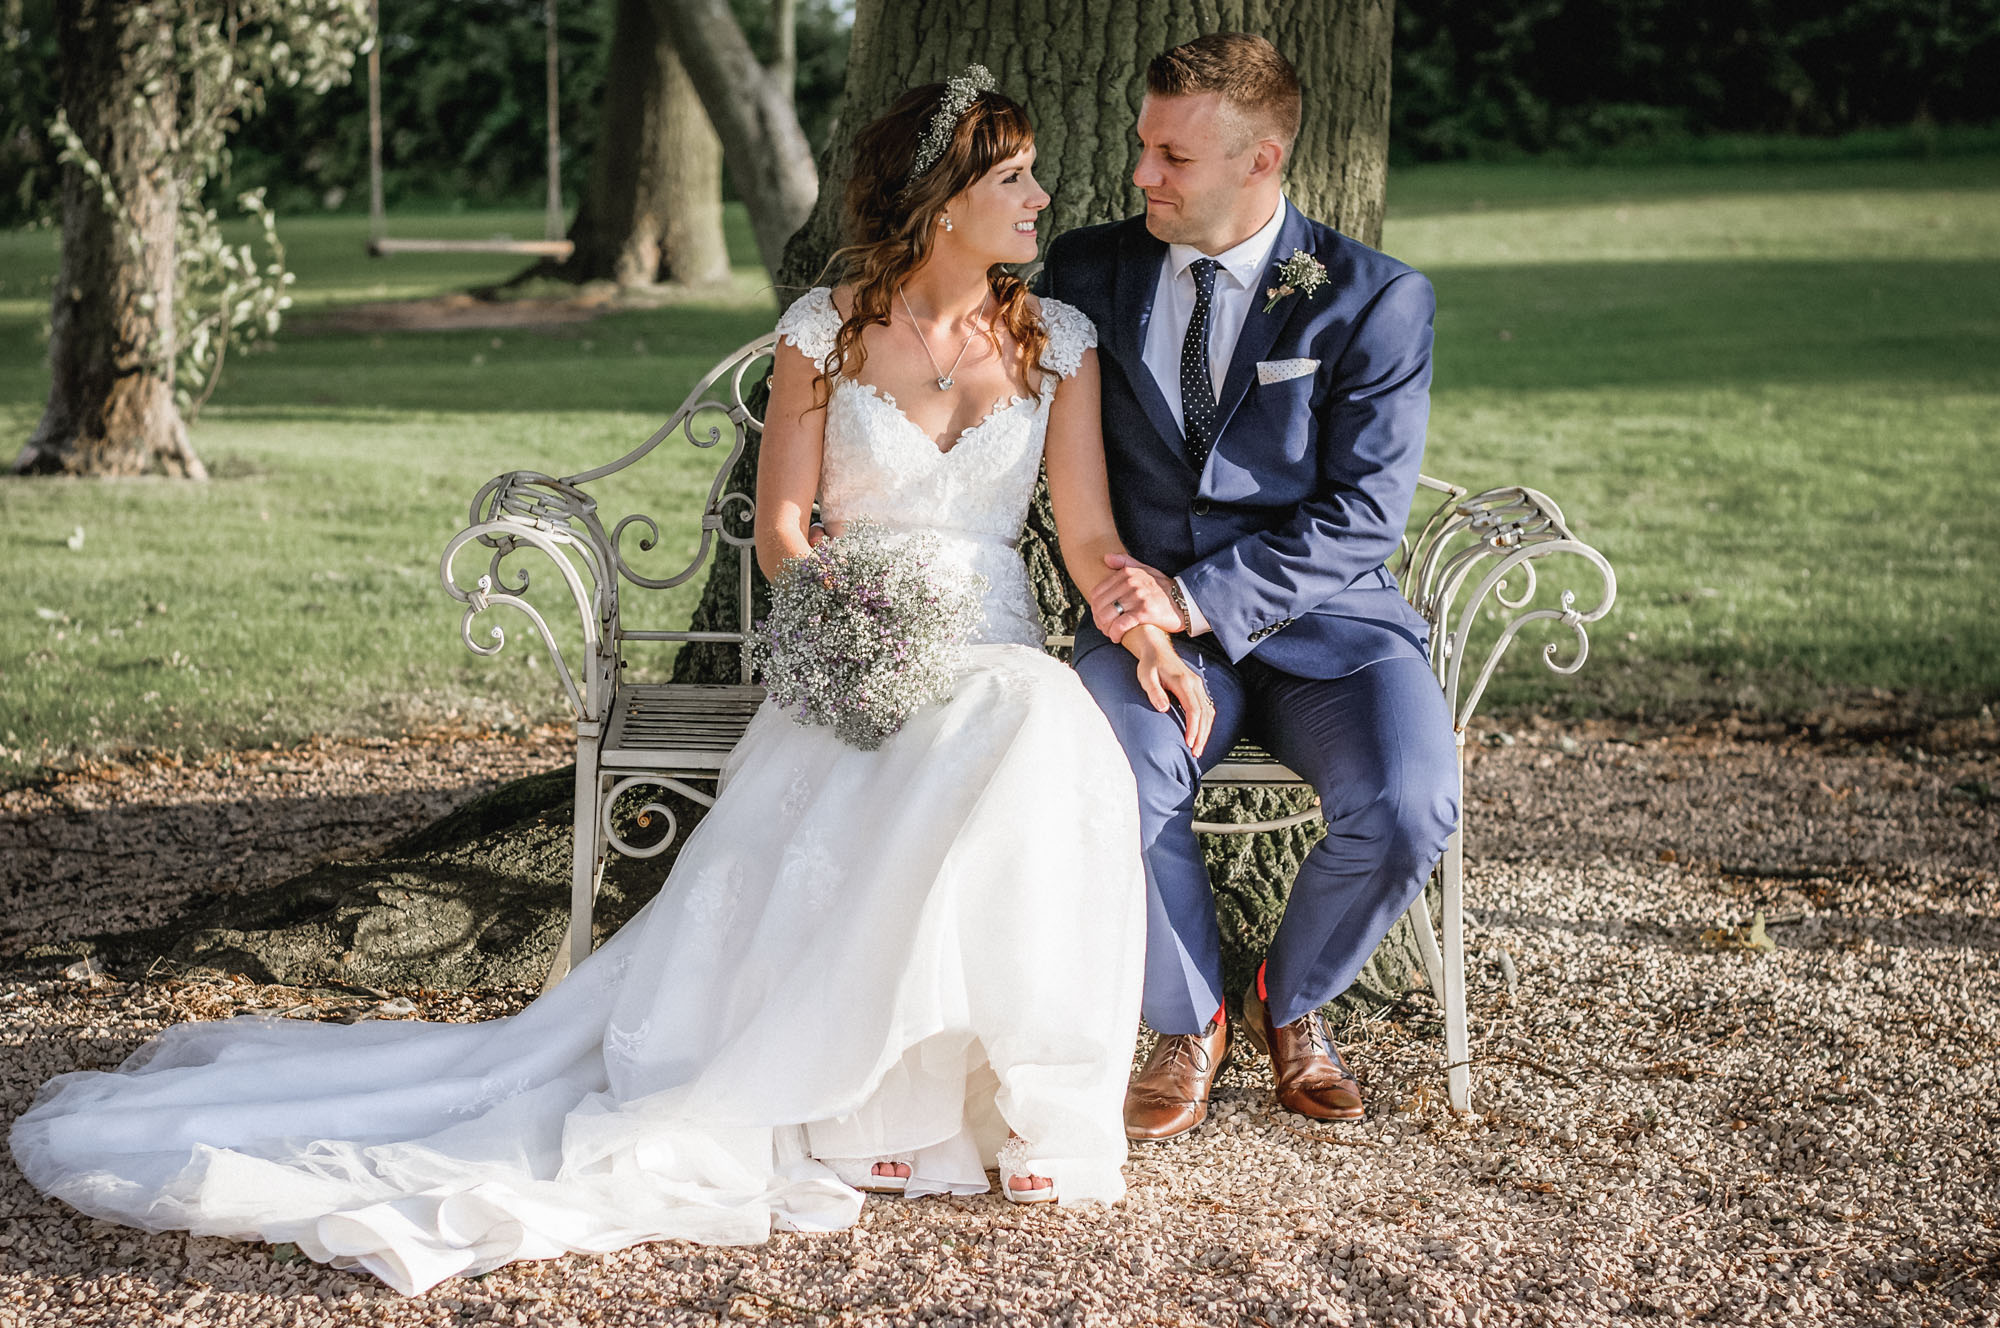 Warwickshire Wedding Photography Wethele Manor PWedding Photographer Chris Fossey Photography